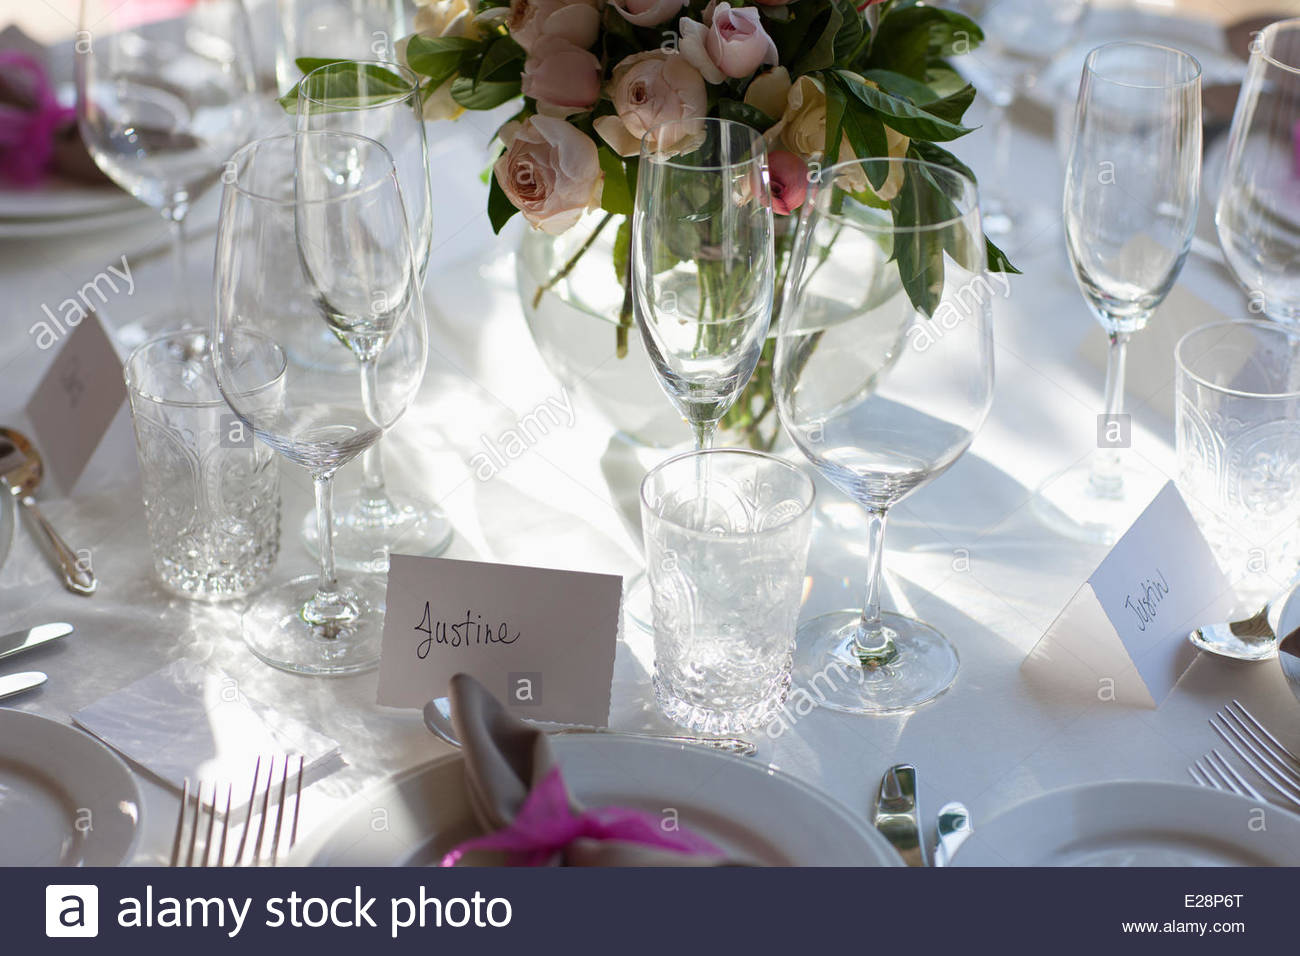 Champagne Decor Stock Photos & Champagne Decor Stock Images - Alamy